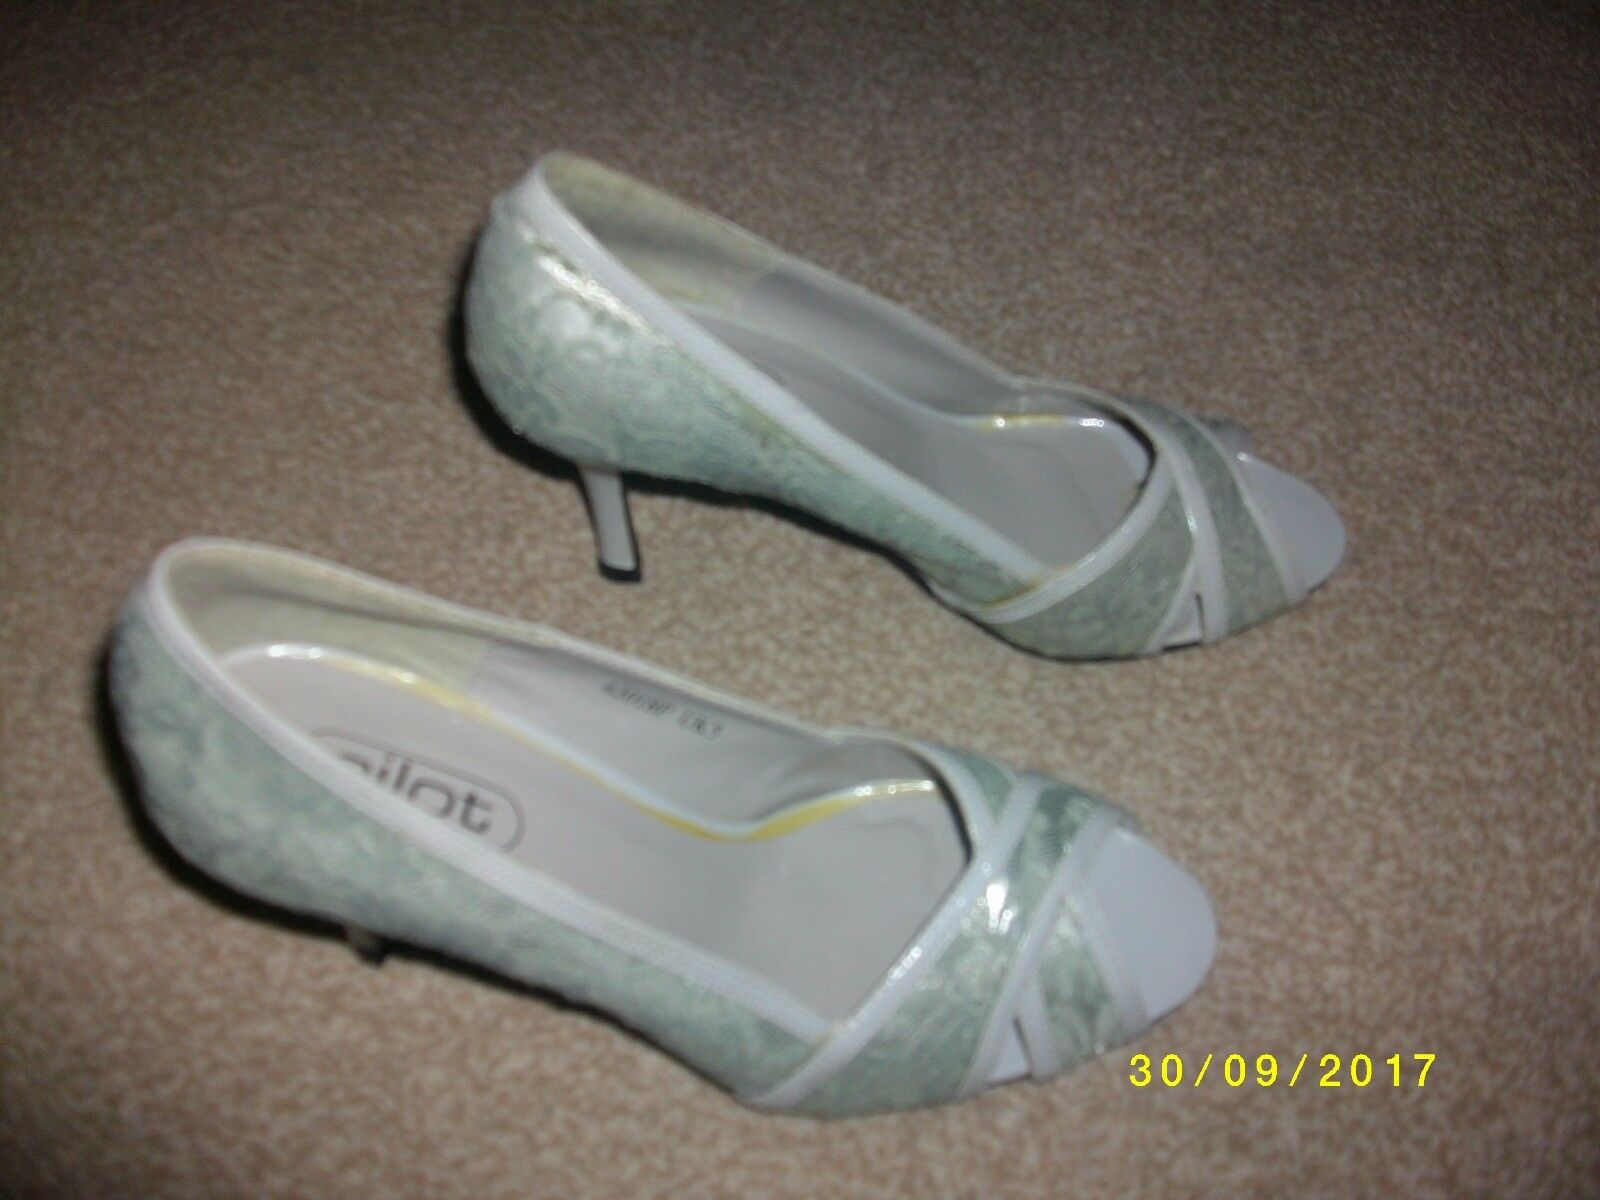 Ladies Grey Slip On Slim Heeled Shoes Size 5 from Pilot